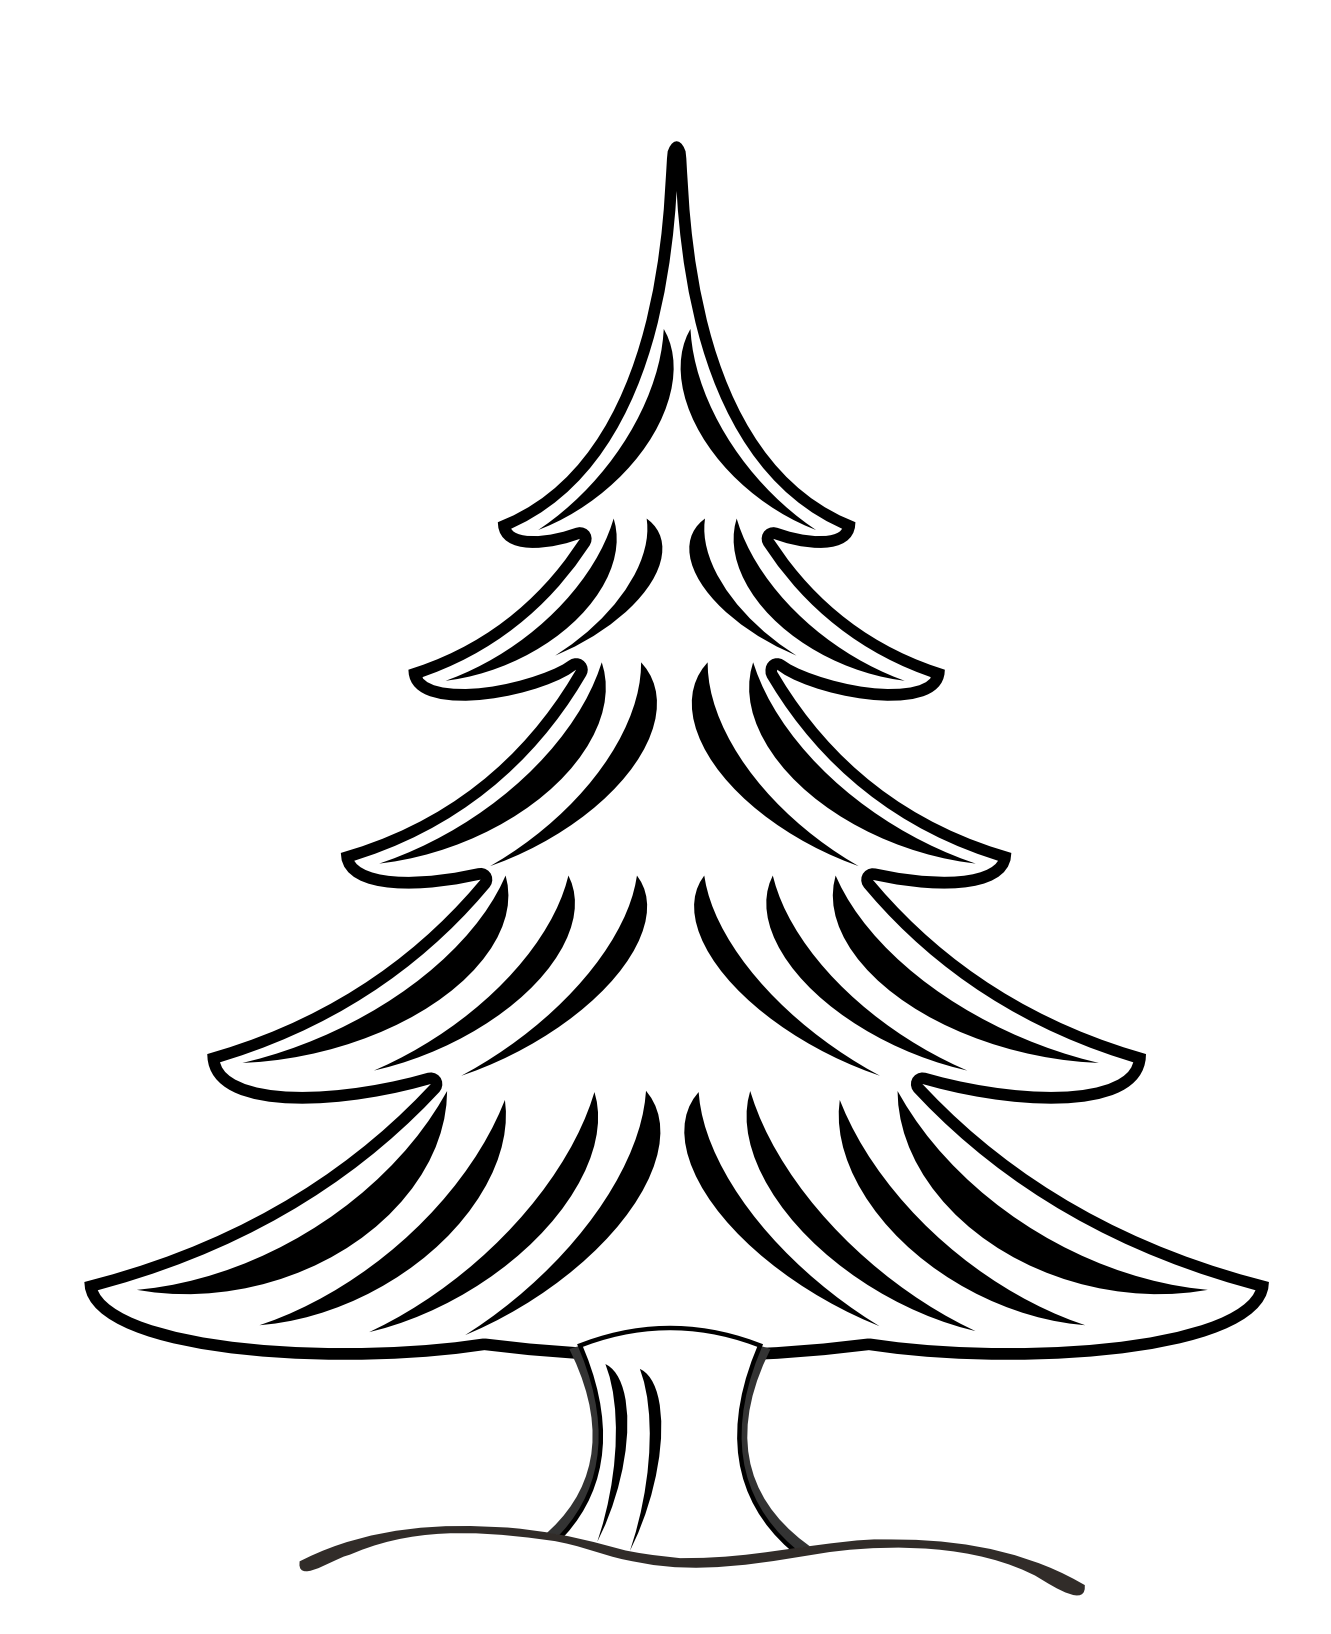 Christmas star free professional. Tree clipart black and white